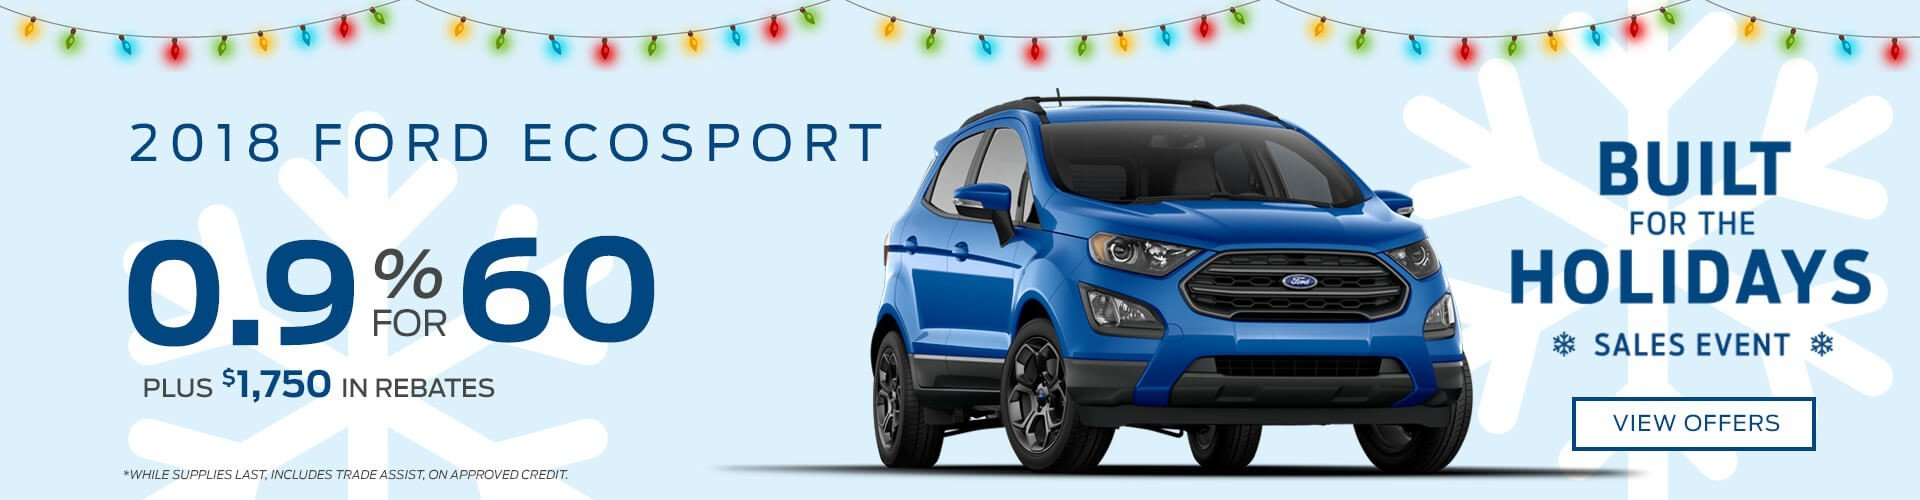 Special offer on 2018 Ford EcoSport 2018 Ford EcoSport